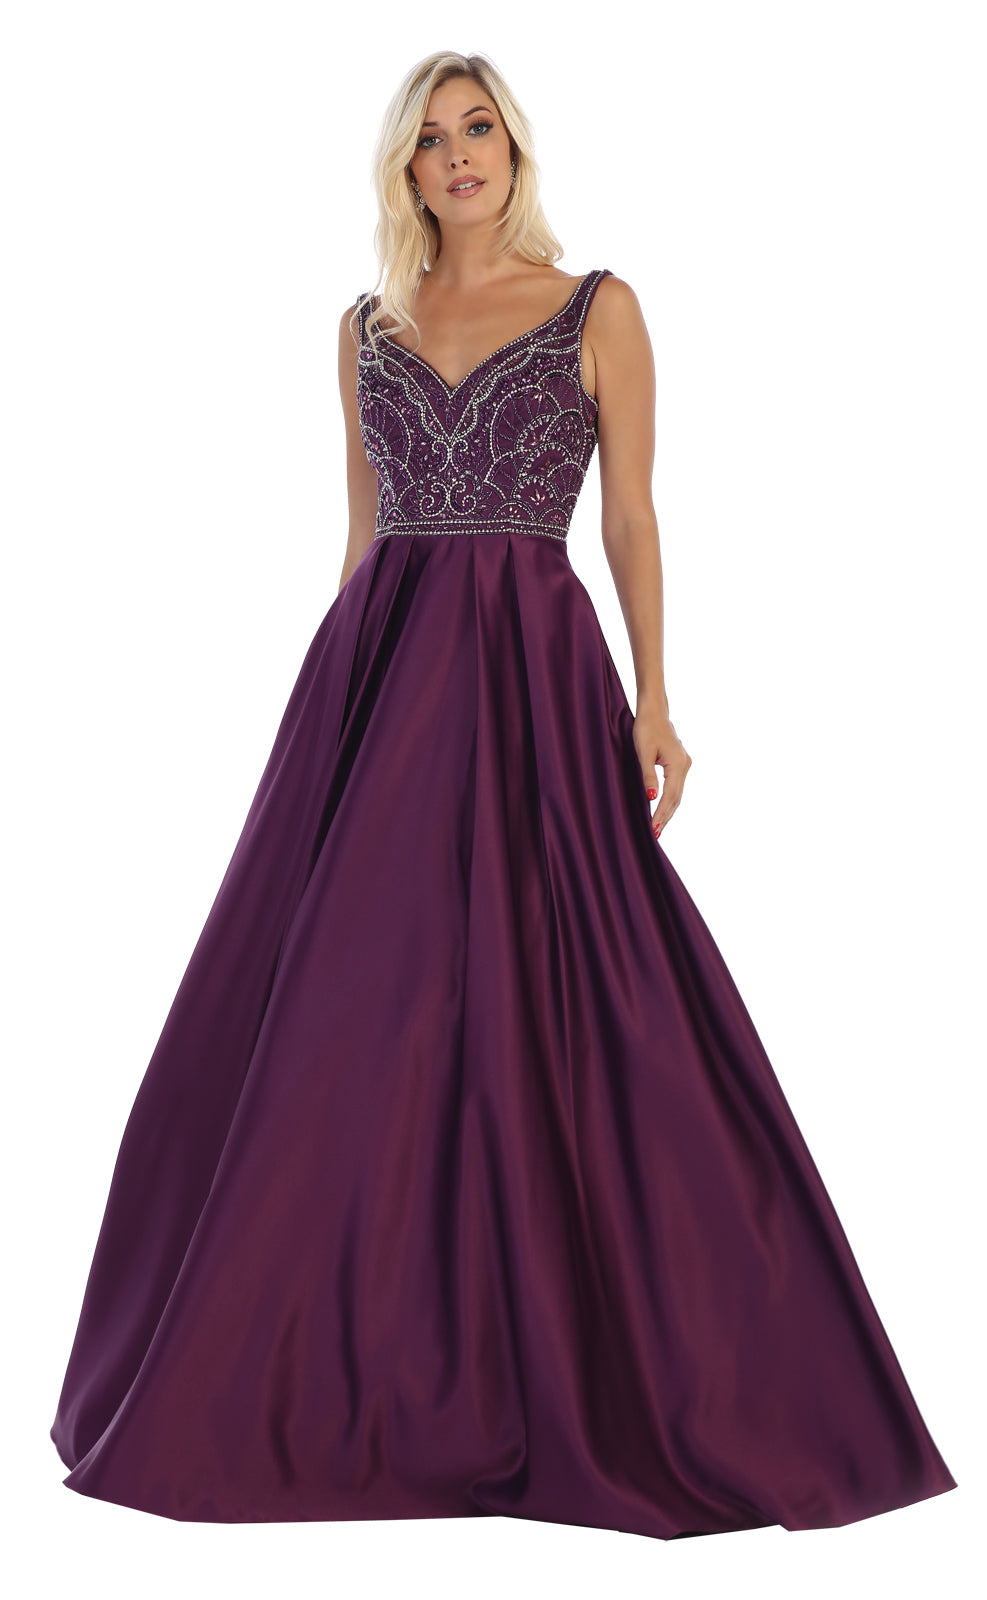 Eggplant Prom Dress With A Sweetheart Embellished Bodice With Full Skirt